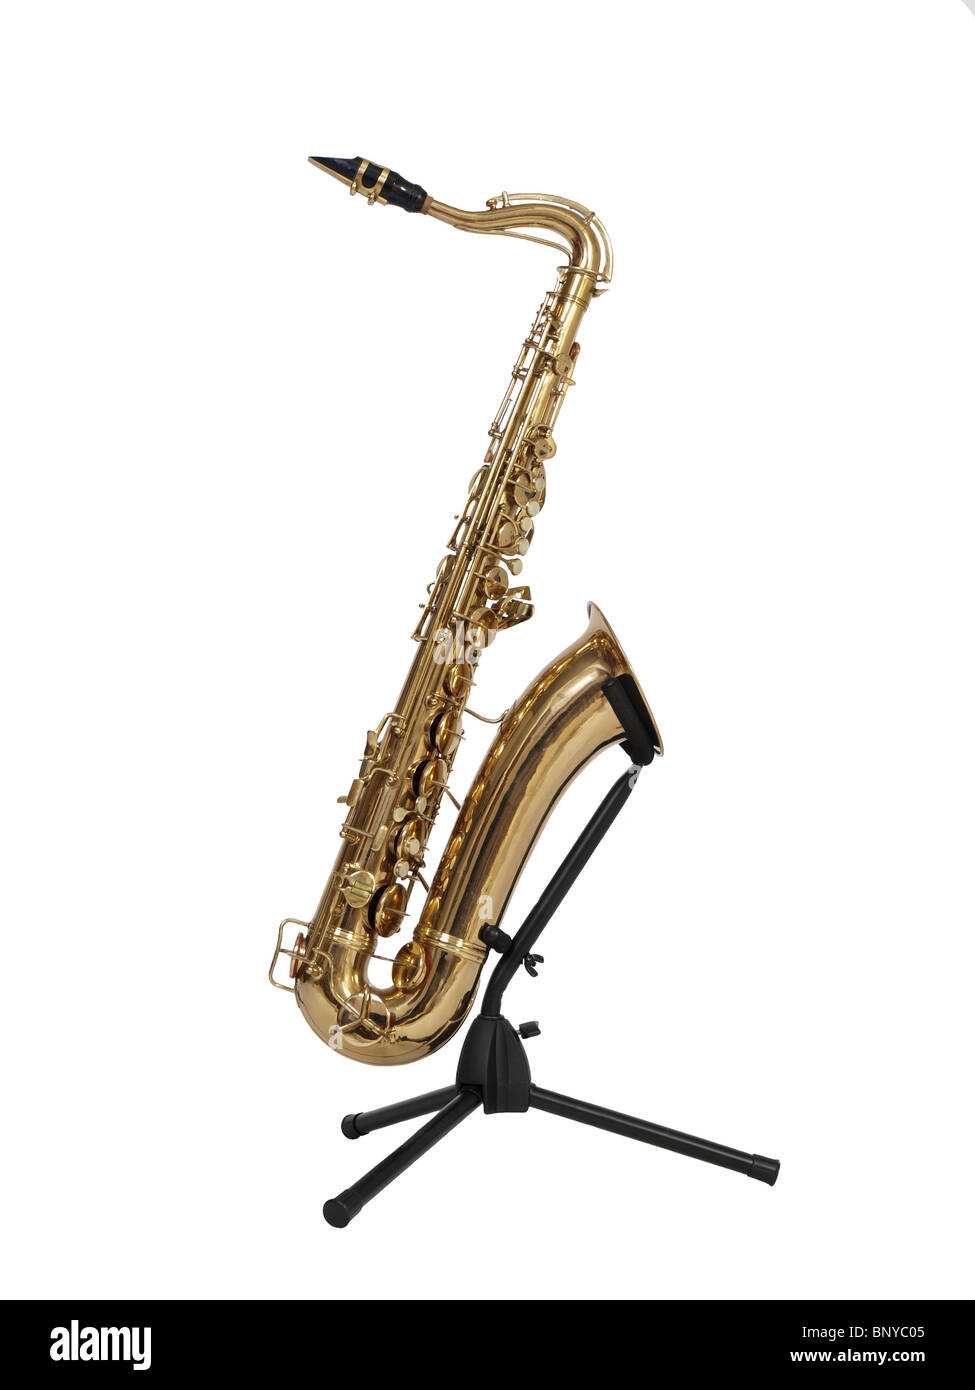 Vintage brass saxophone from the 1930's in excellent condition. - Stock Image